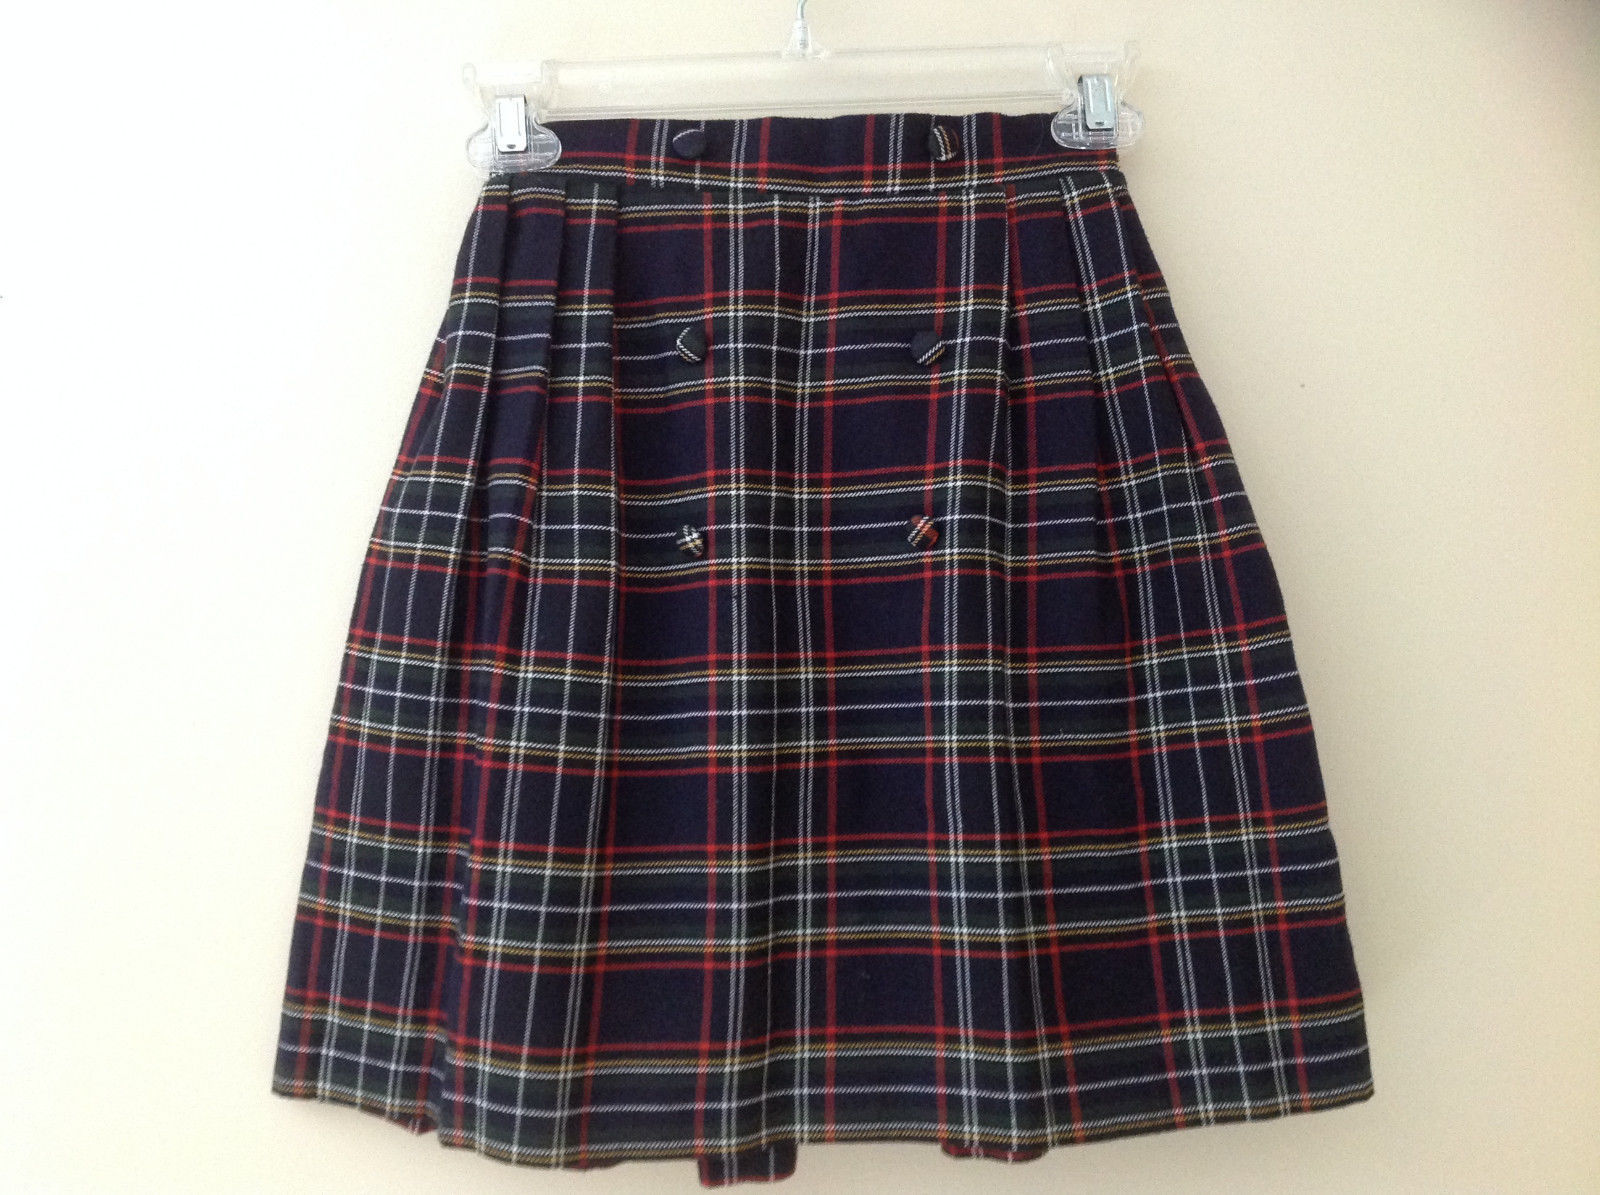 Knee Length Navy Red Plaid Buttoned Skirt Double Rows of Buttons Size S/M